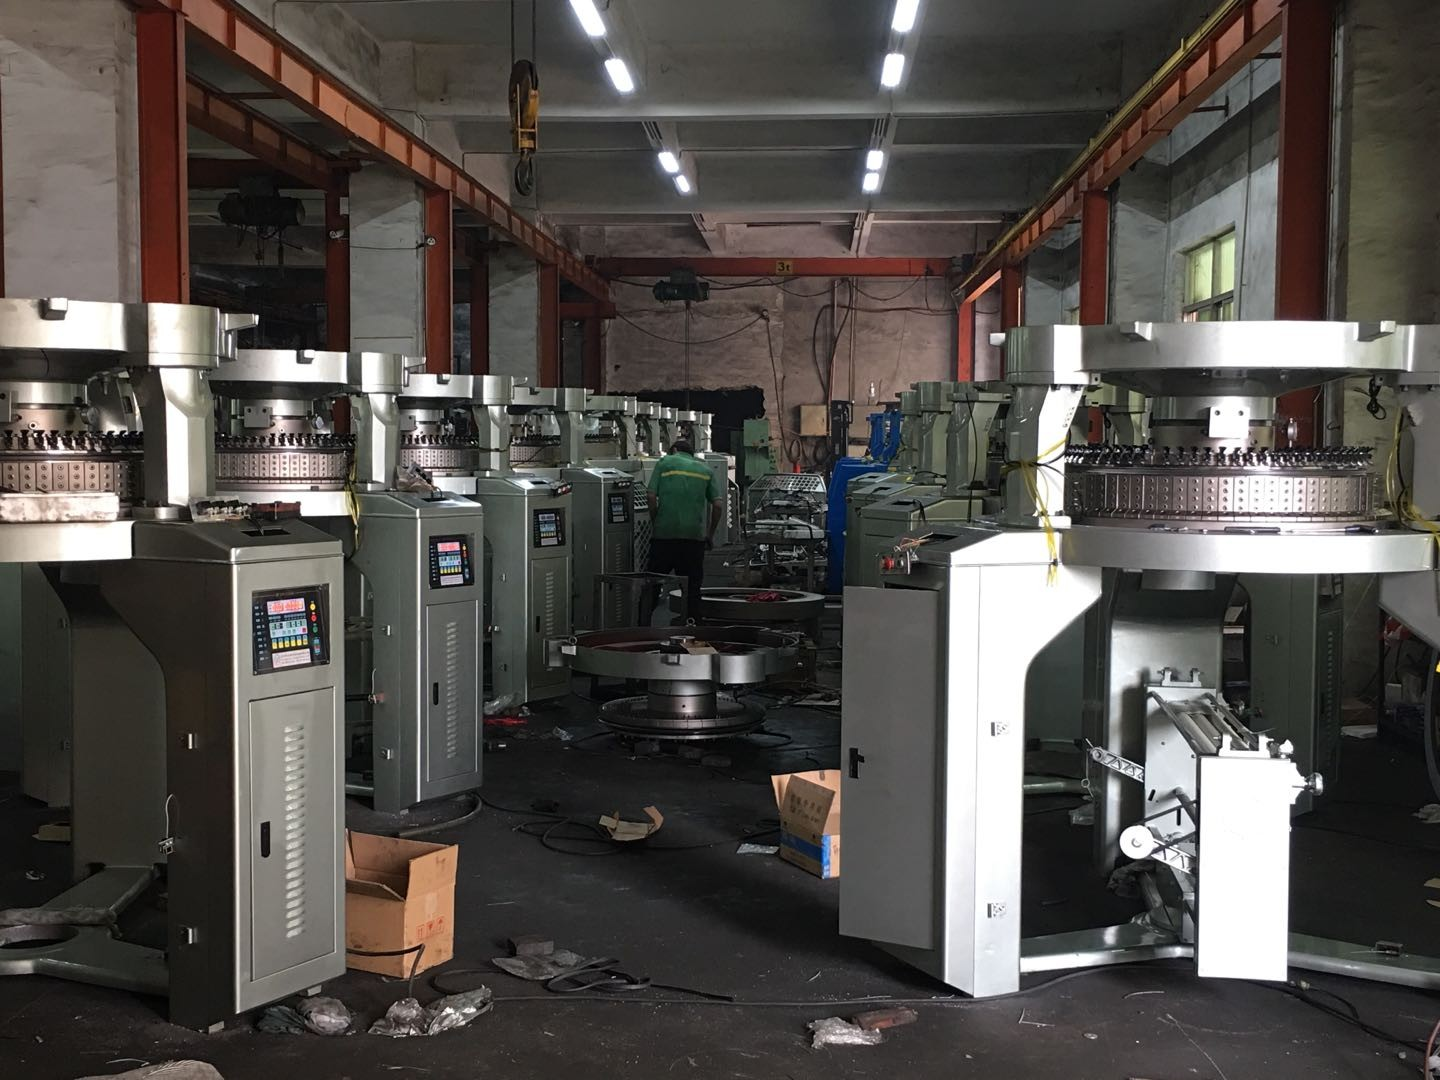 New Type High Quality Cylinder for Circular Knitting Machine Manufacturers, New Type High Quality Cylinder for Circular Knitting Machine Factory, Supply New Type High Quality Cylinder for Circular Knitting Machine